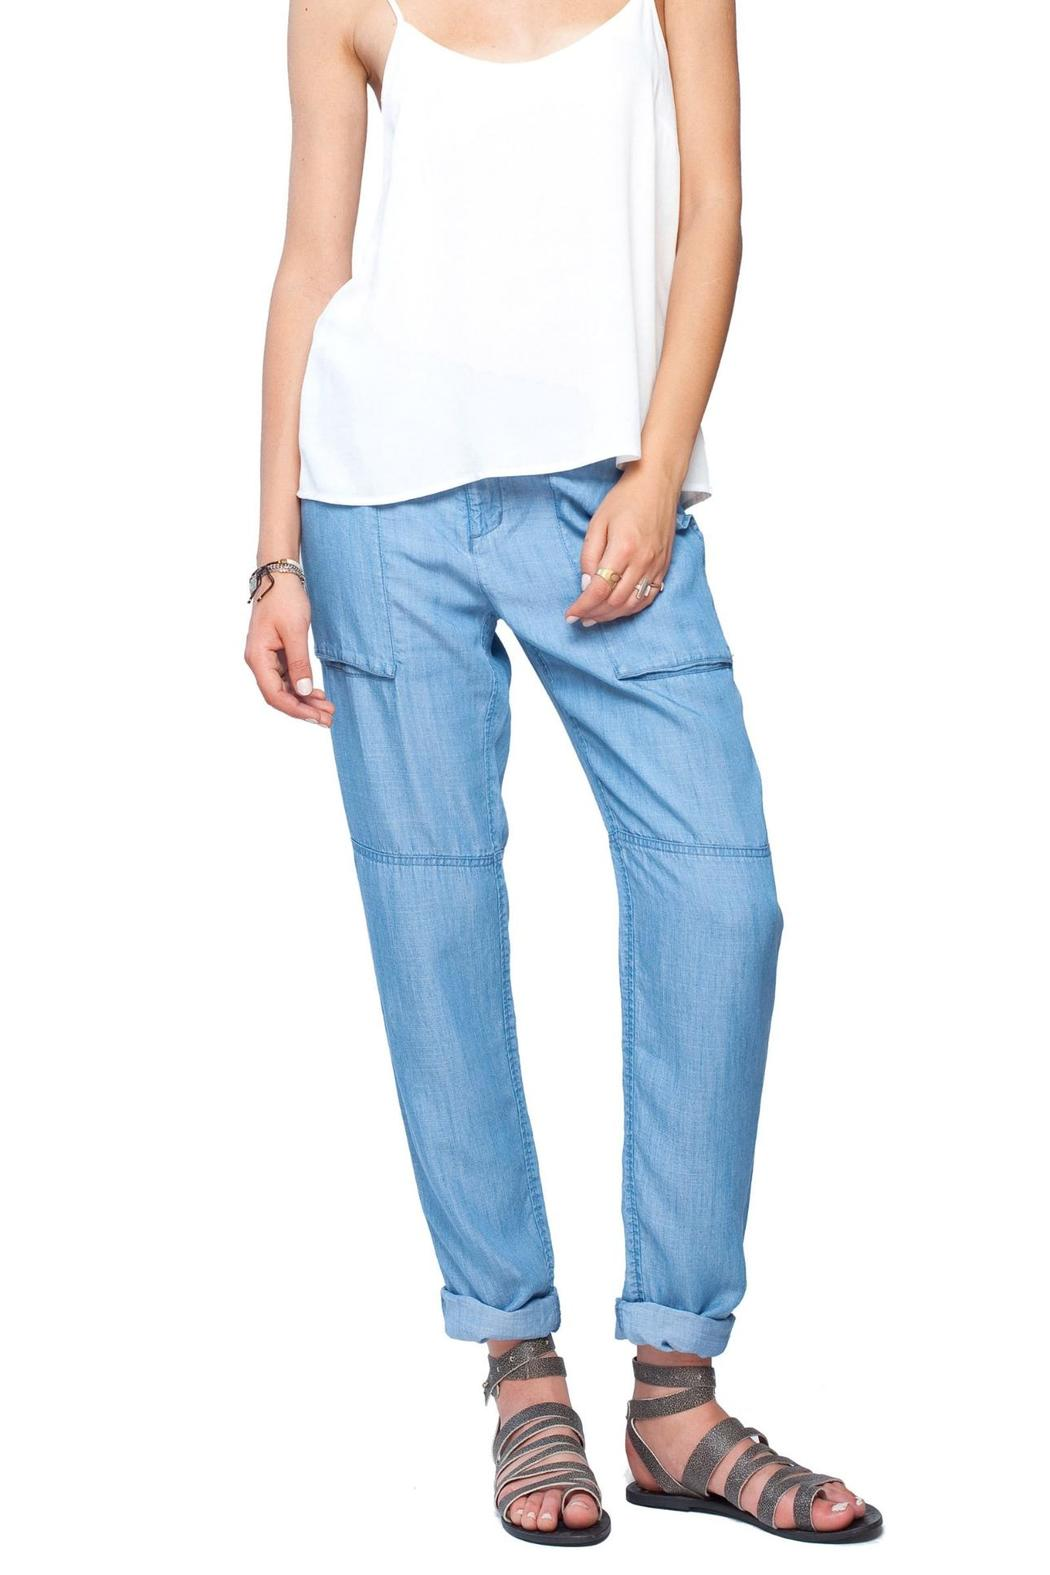 Chambray Linen Pants: Timeless trouser styling in a light and easy cotton/linen blend. Modern Rise; Sits below the waist Embellished Denim Jacket Item